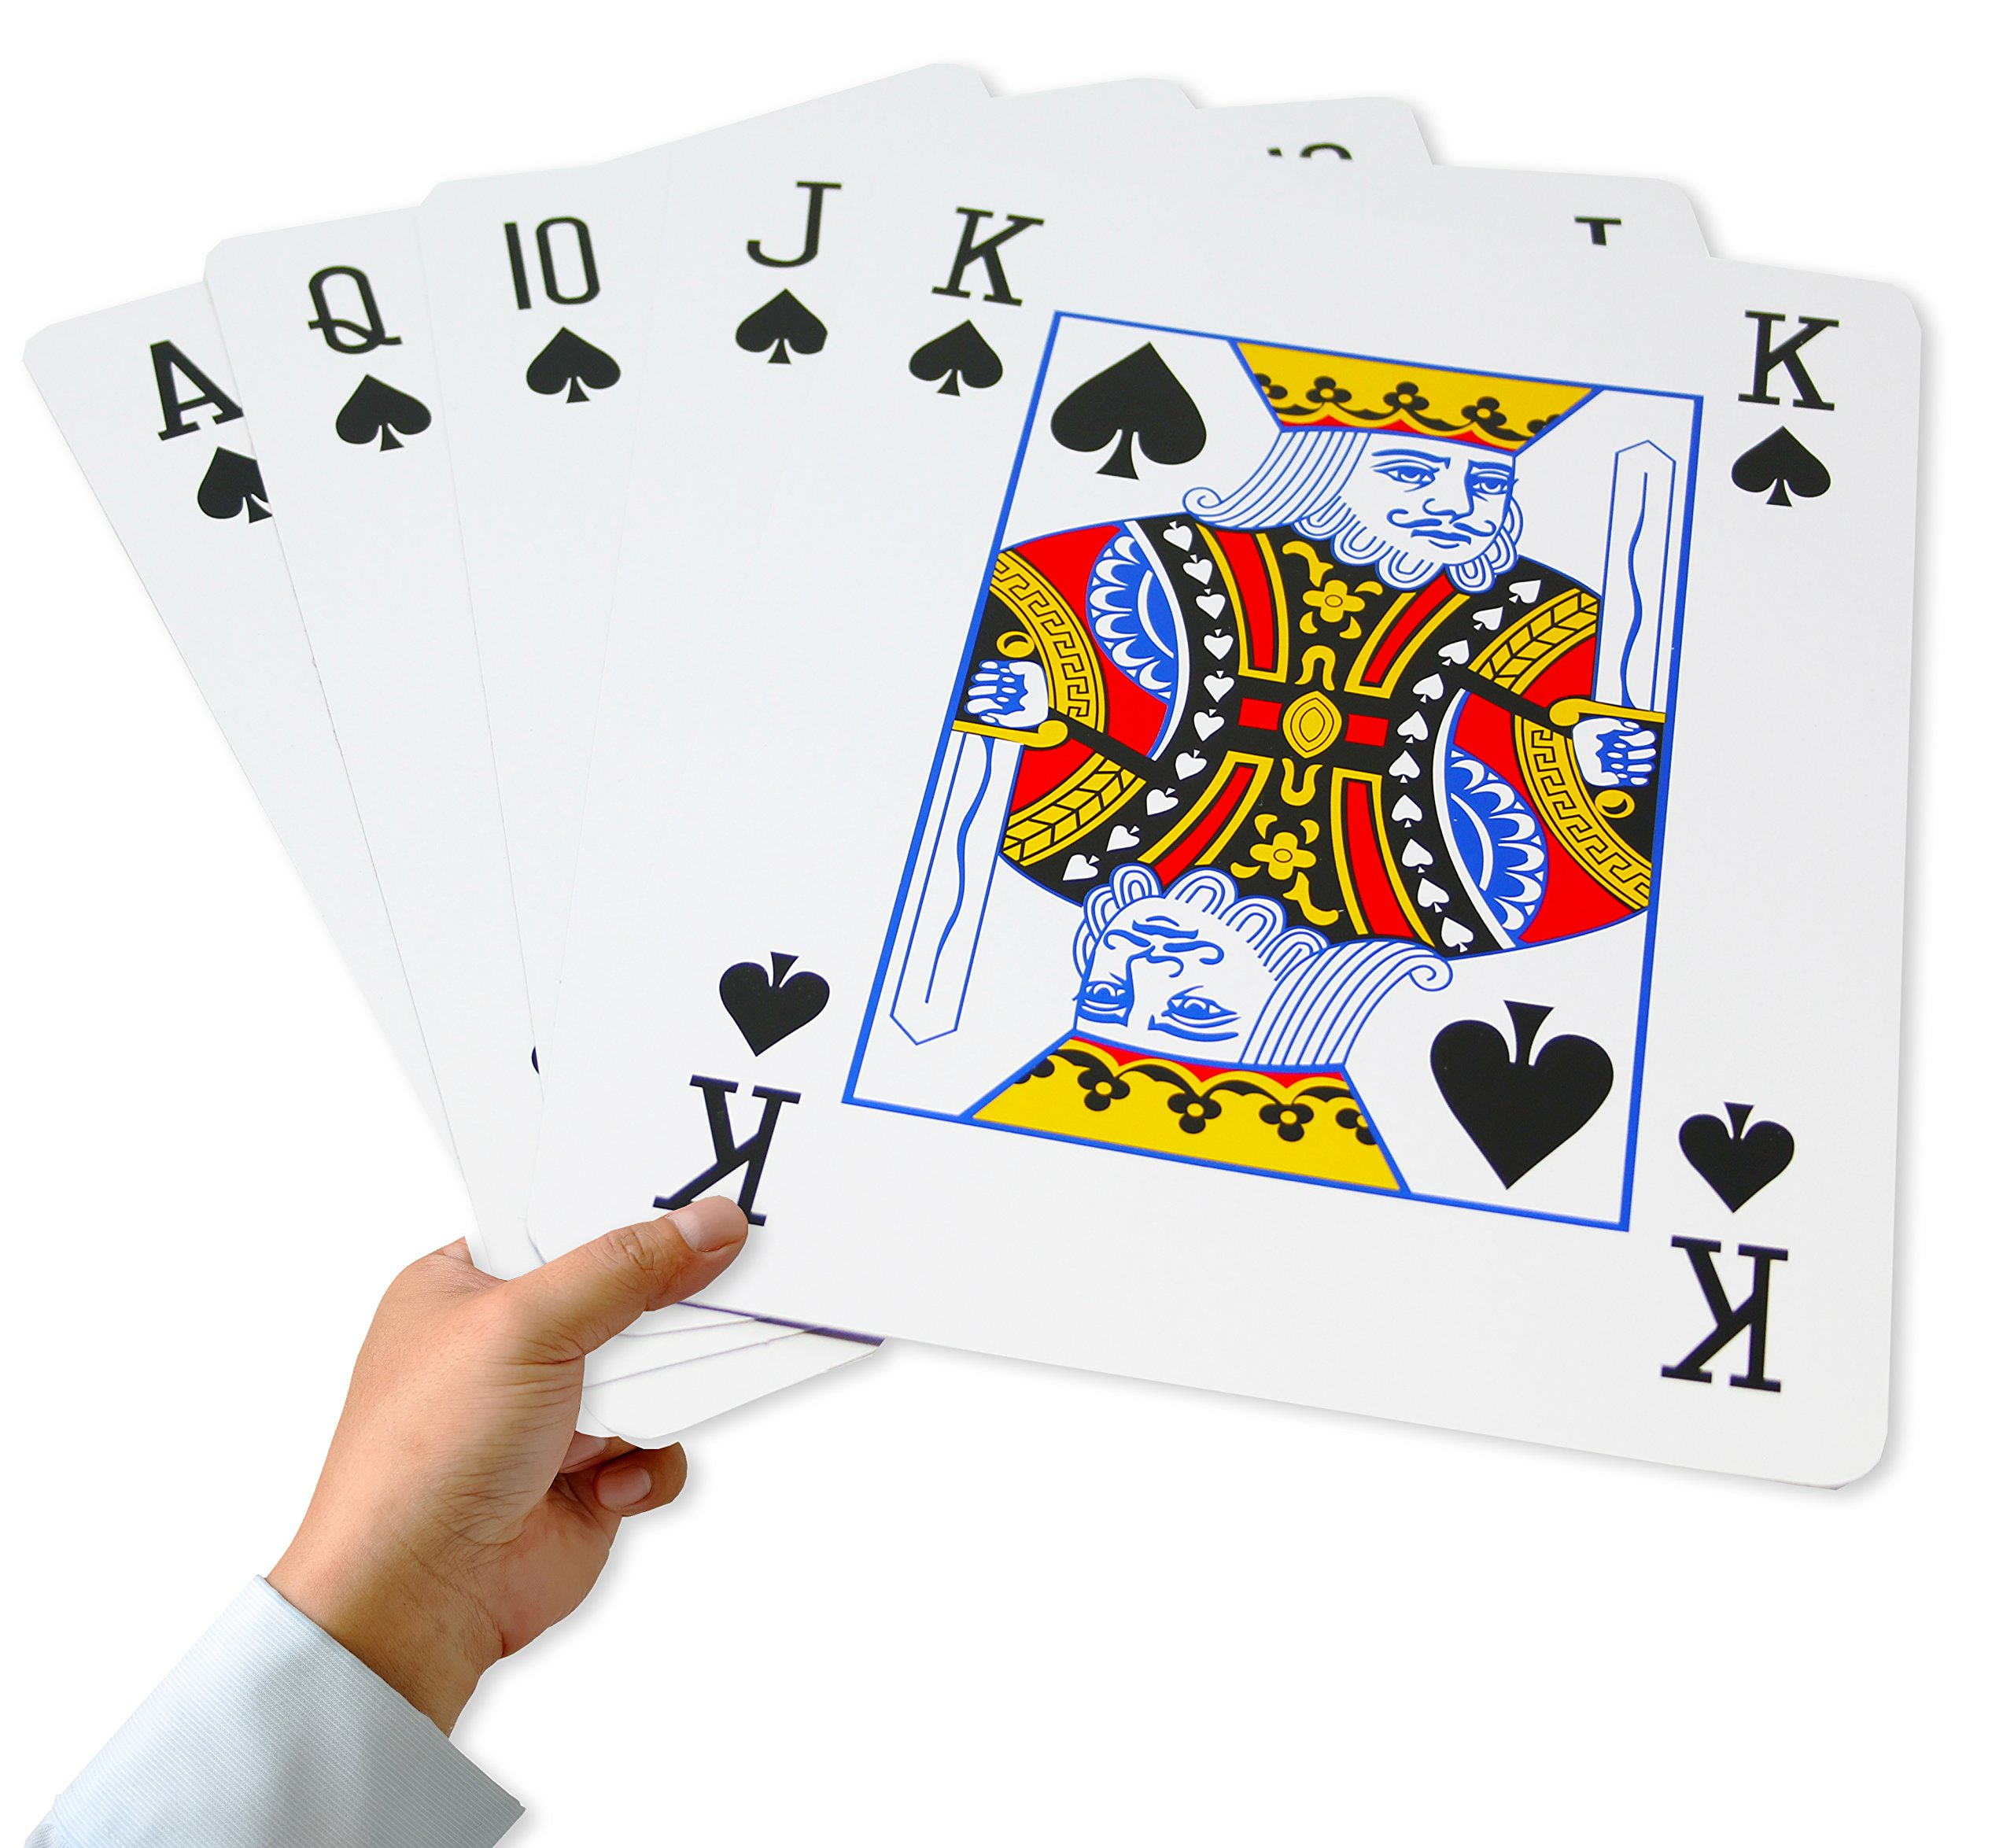 Super Giant Jumbo Playing Cards, Full Deck of 8 x 11 Inch Humongous Playing Cards